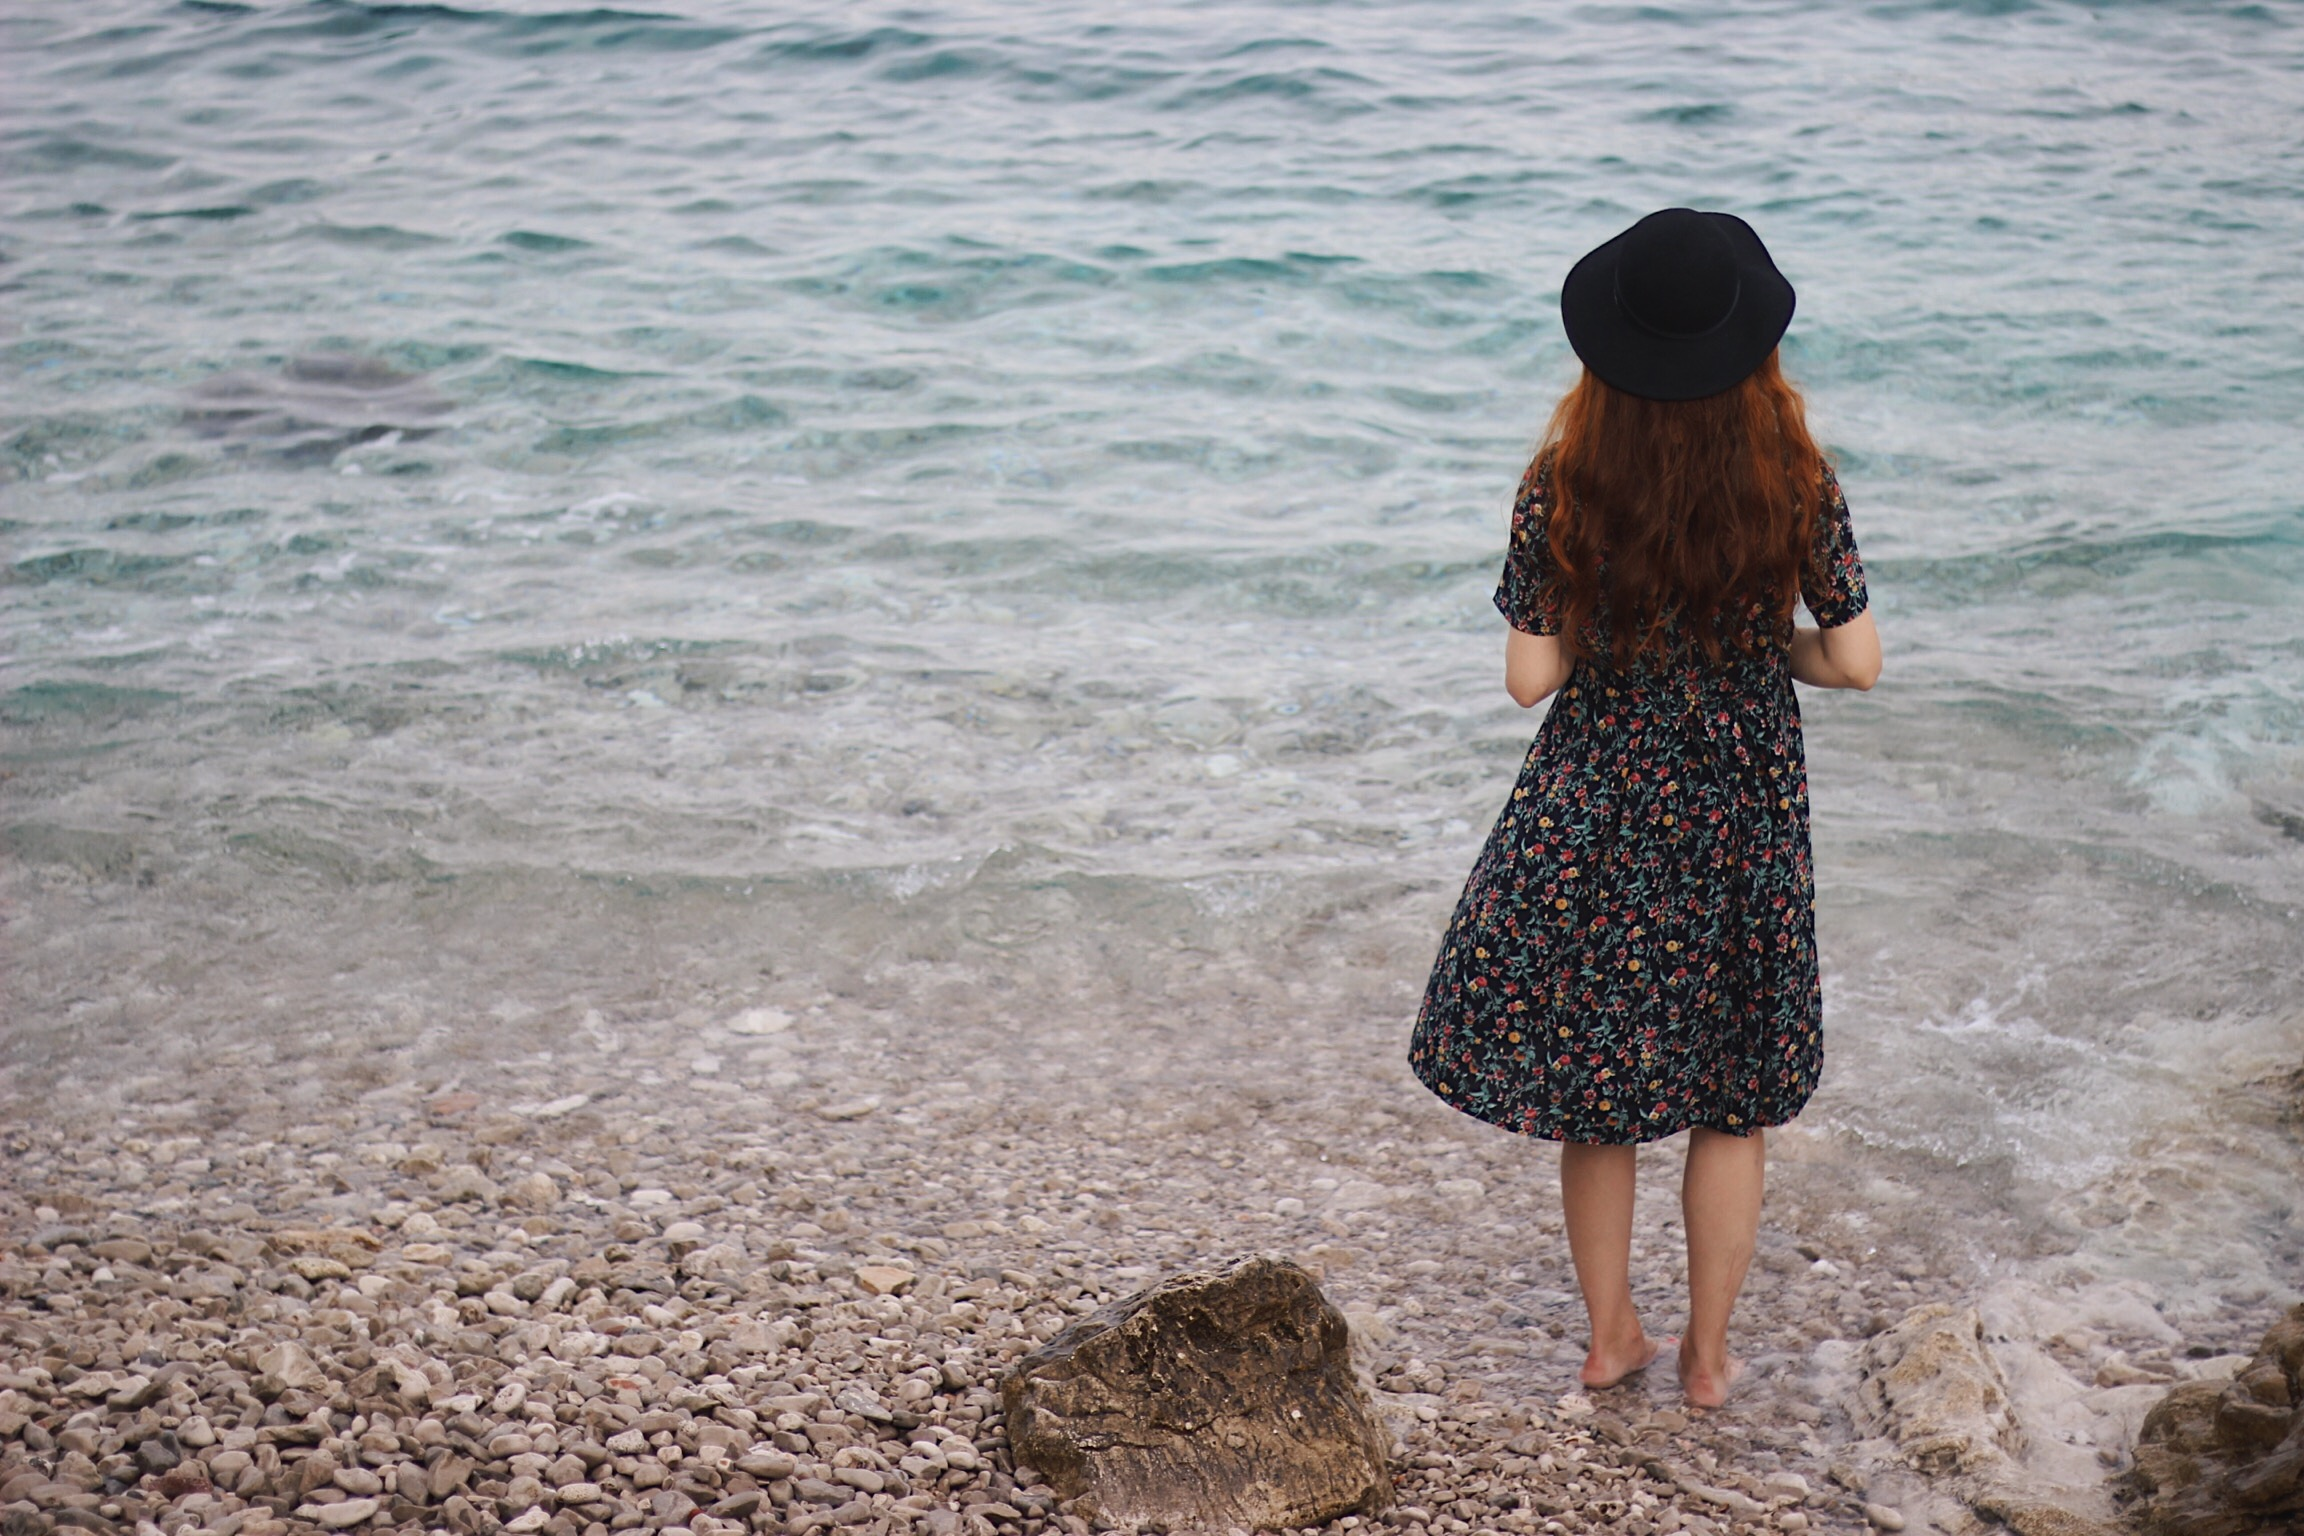 Girl with hat on beach